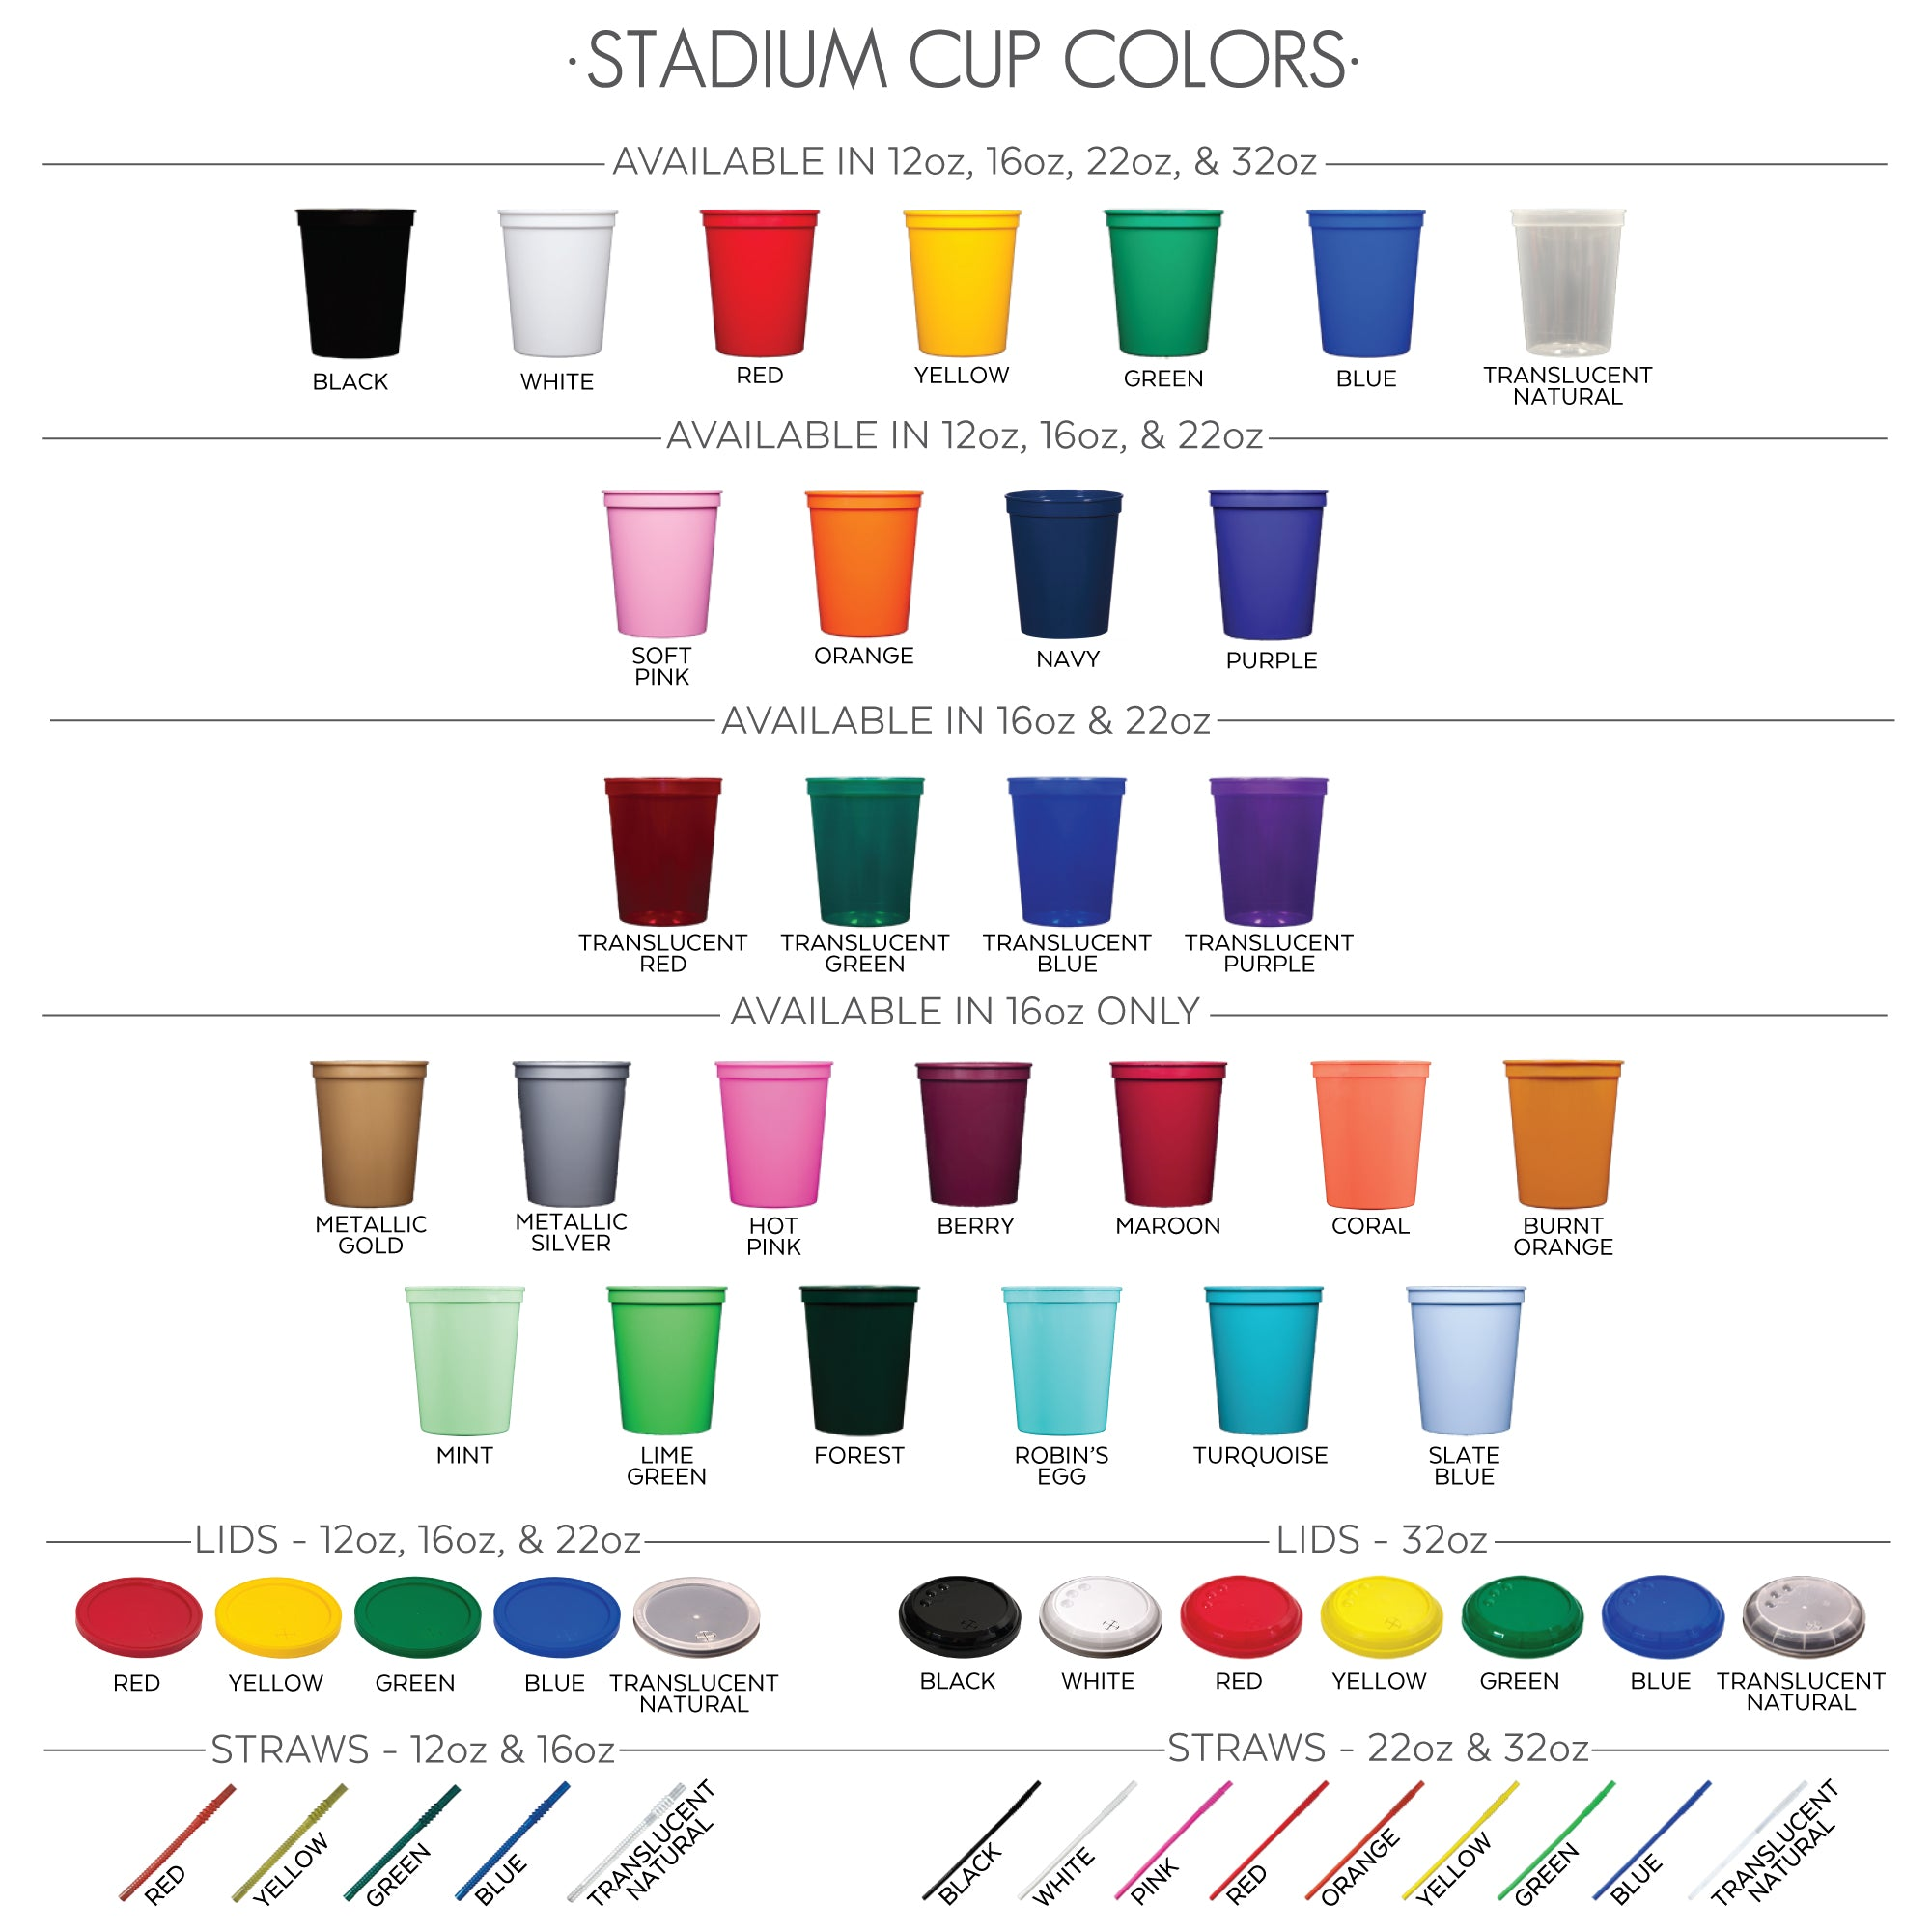 Stadium Cup Colors